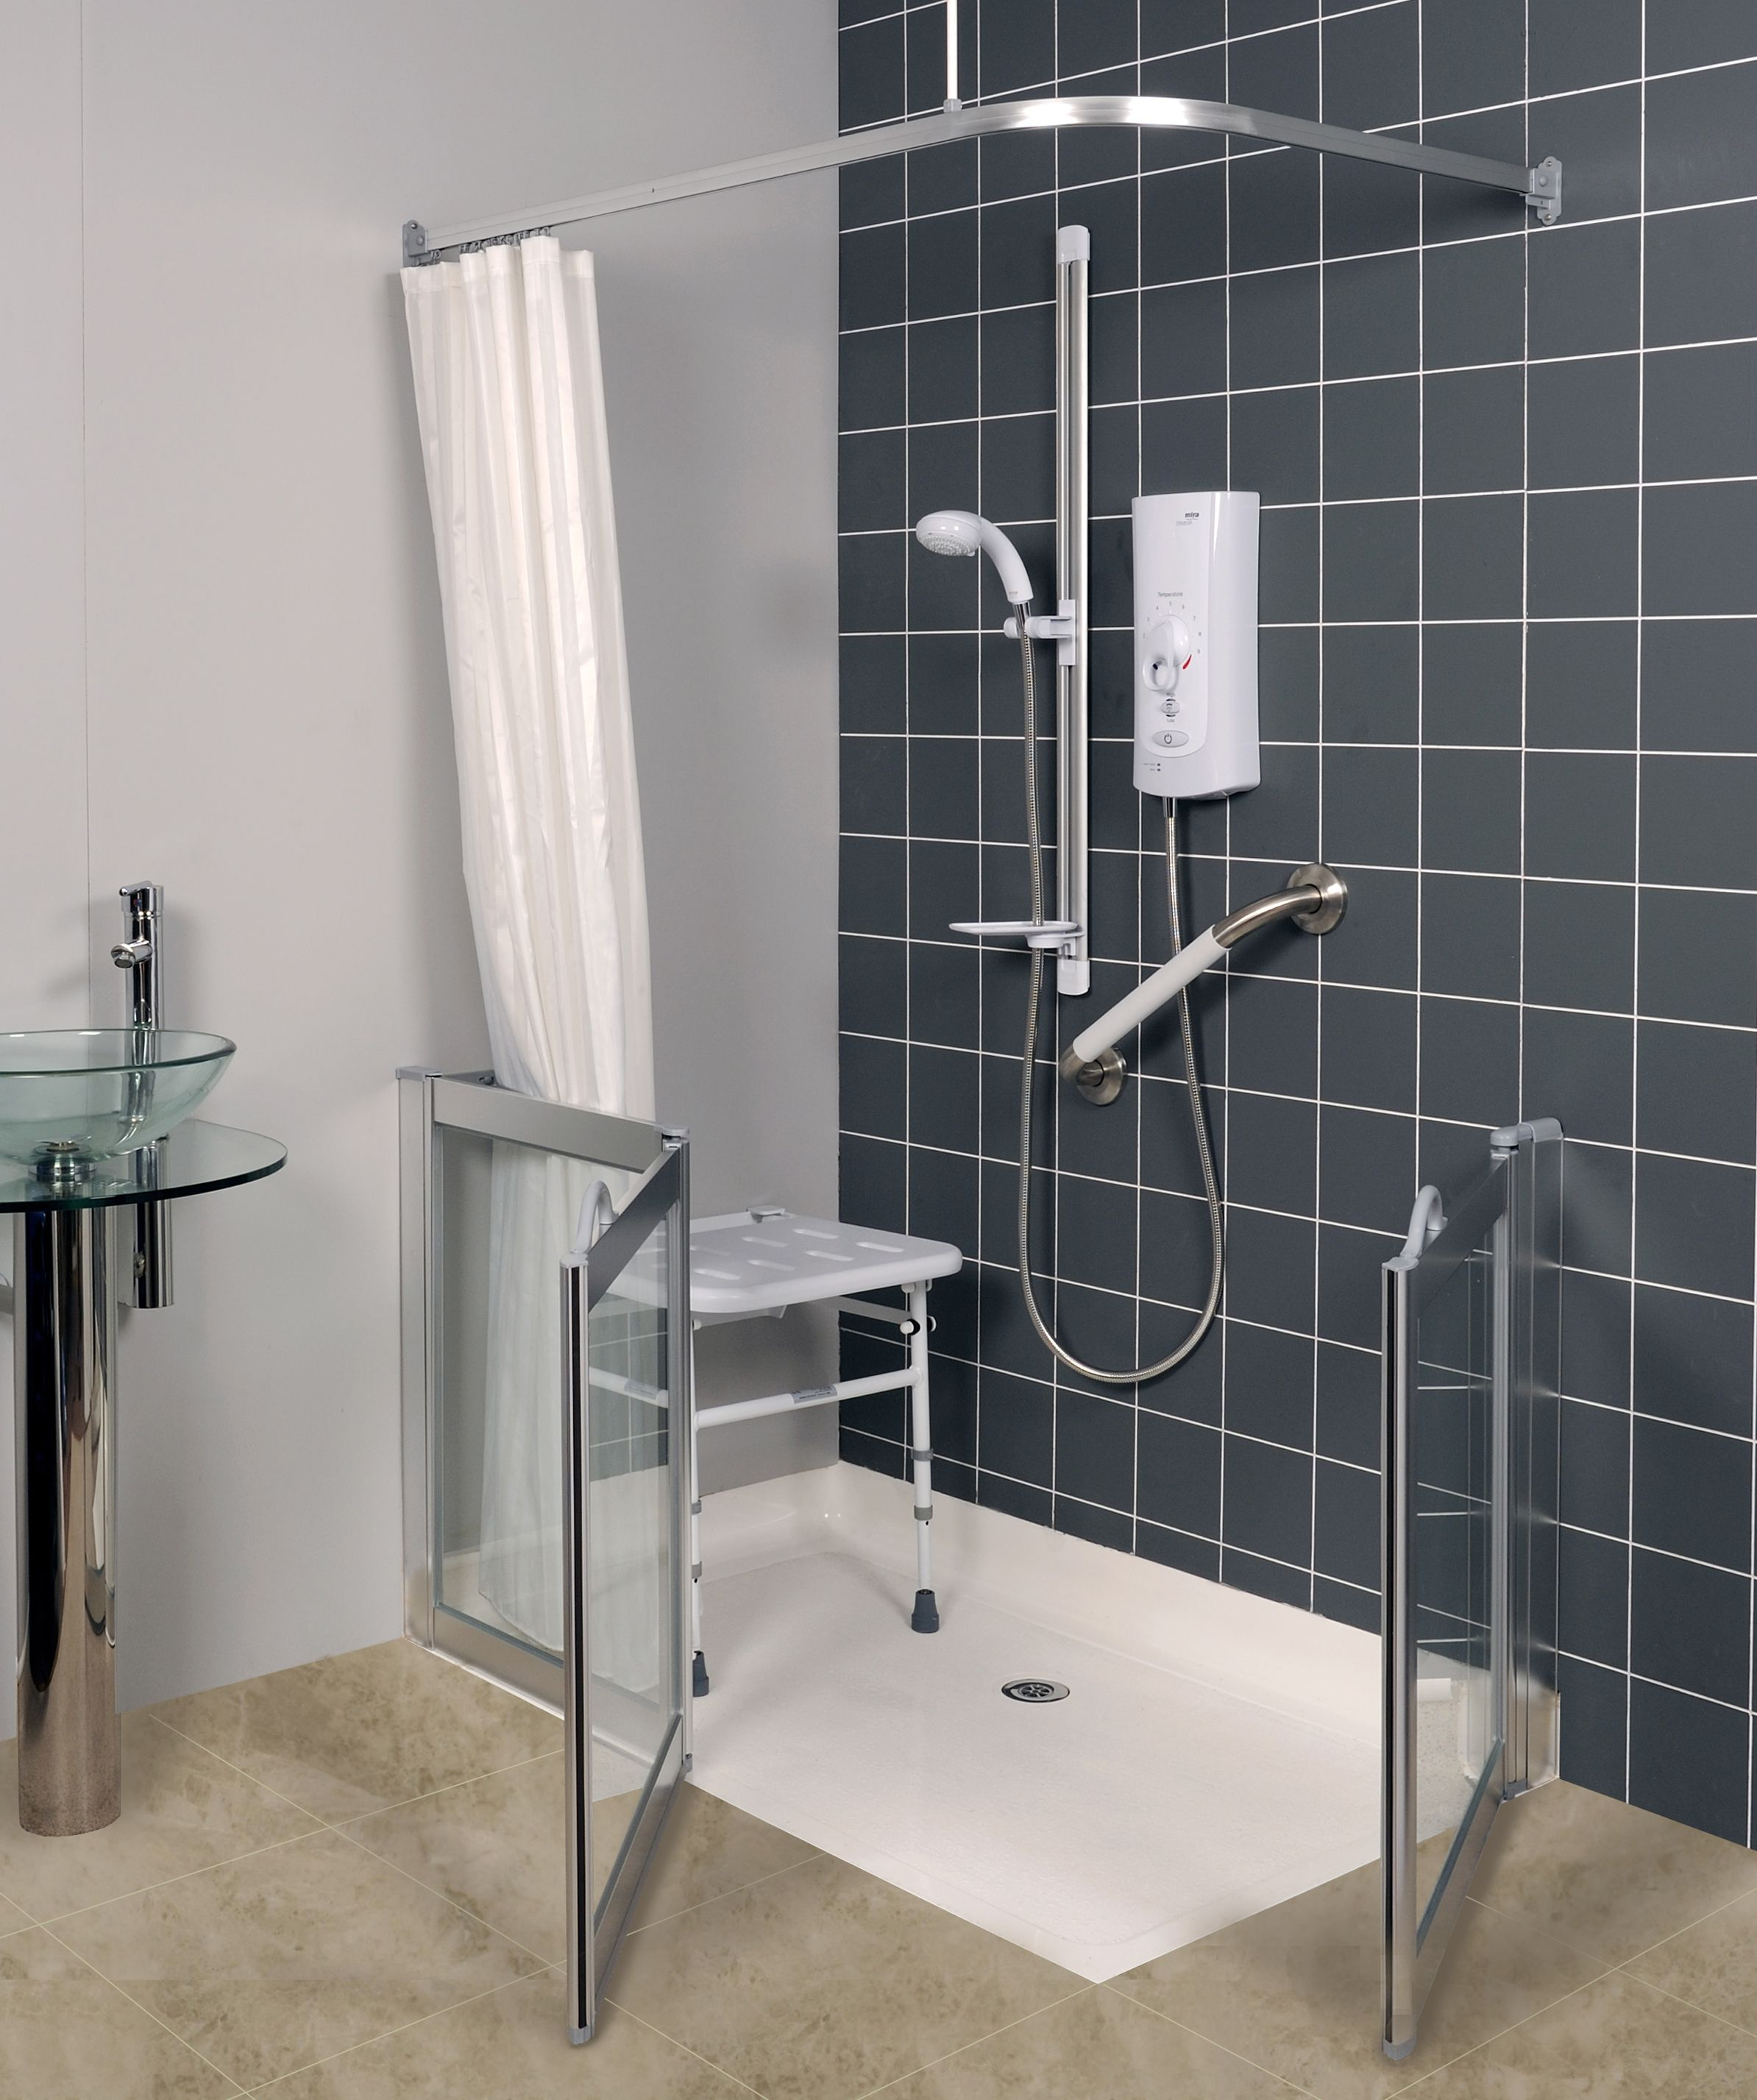 Accessible Showers for the Disabled from Absolute Mobility | Showers ...